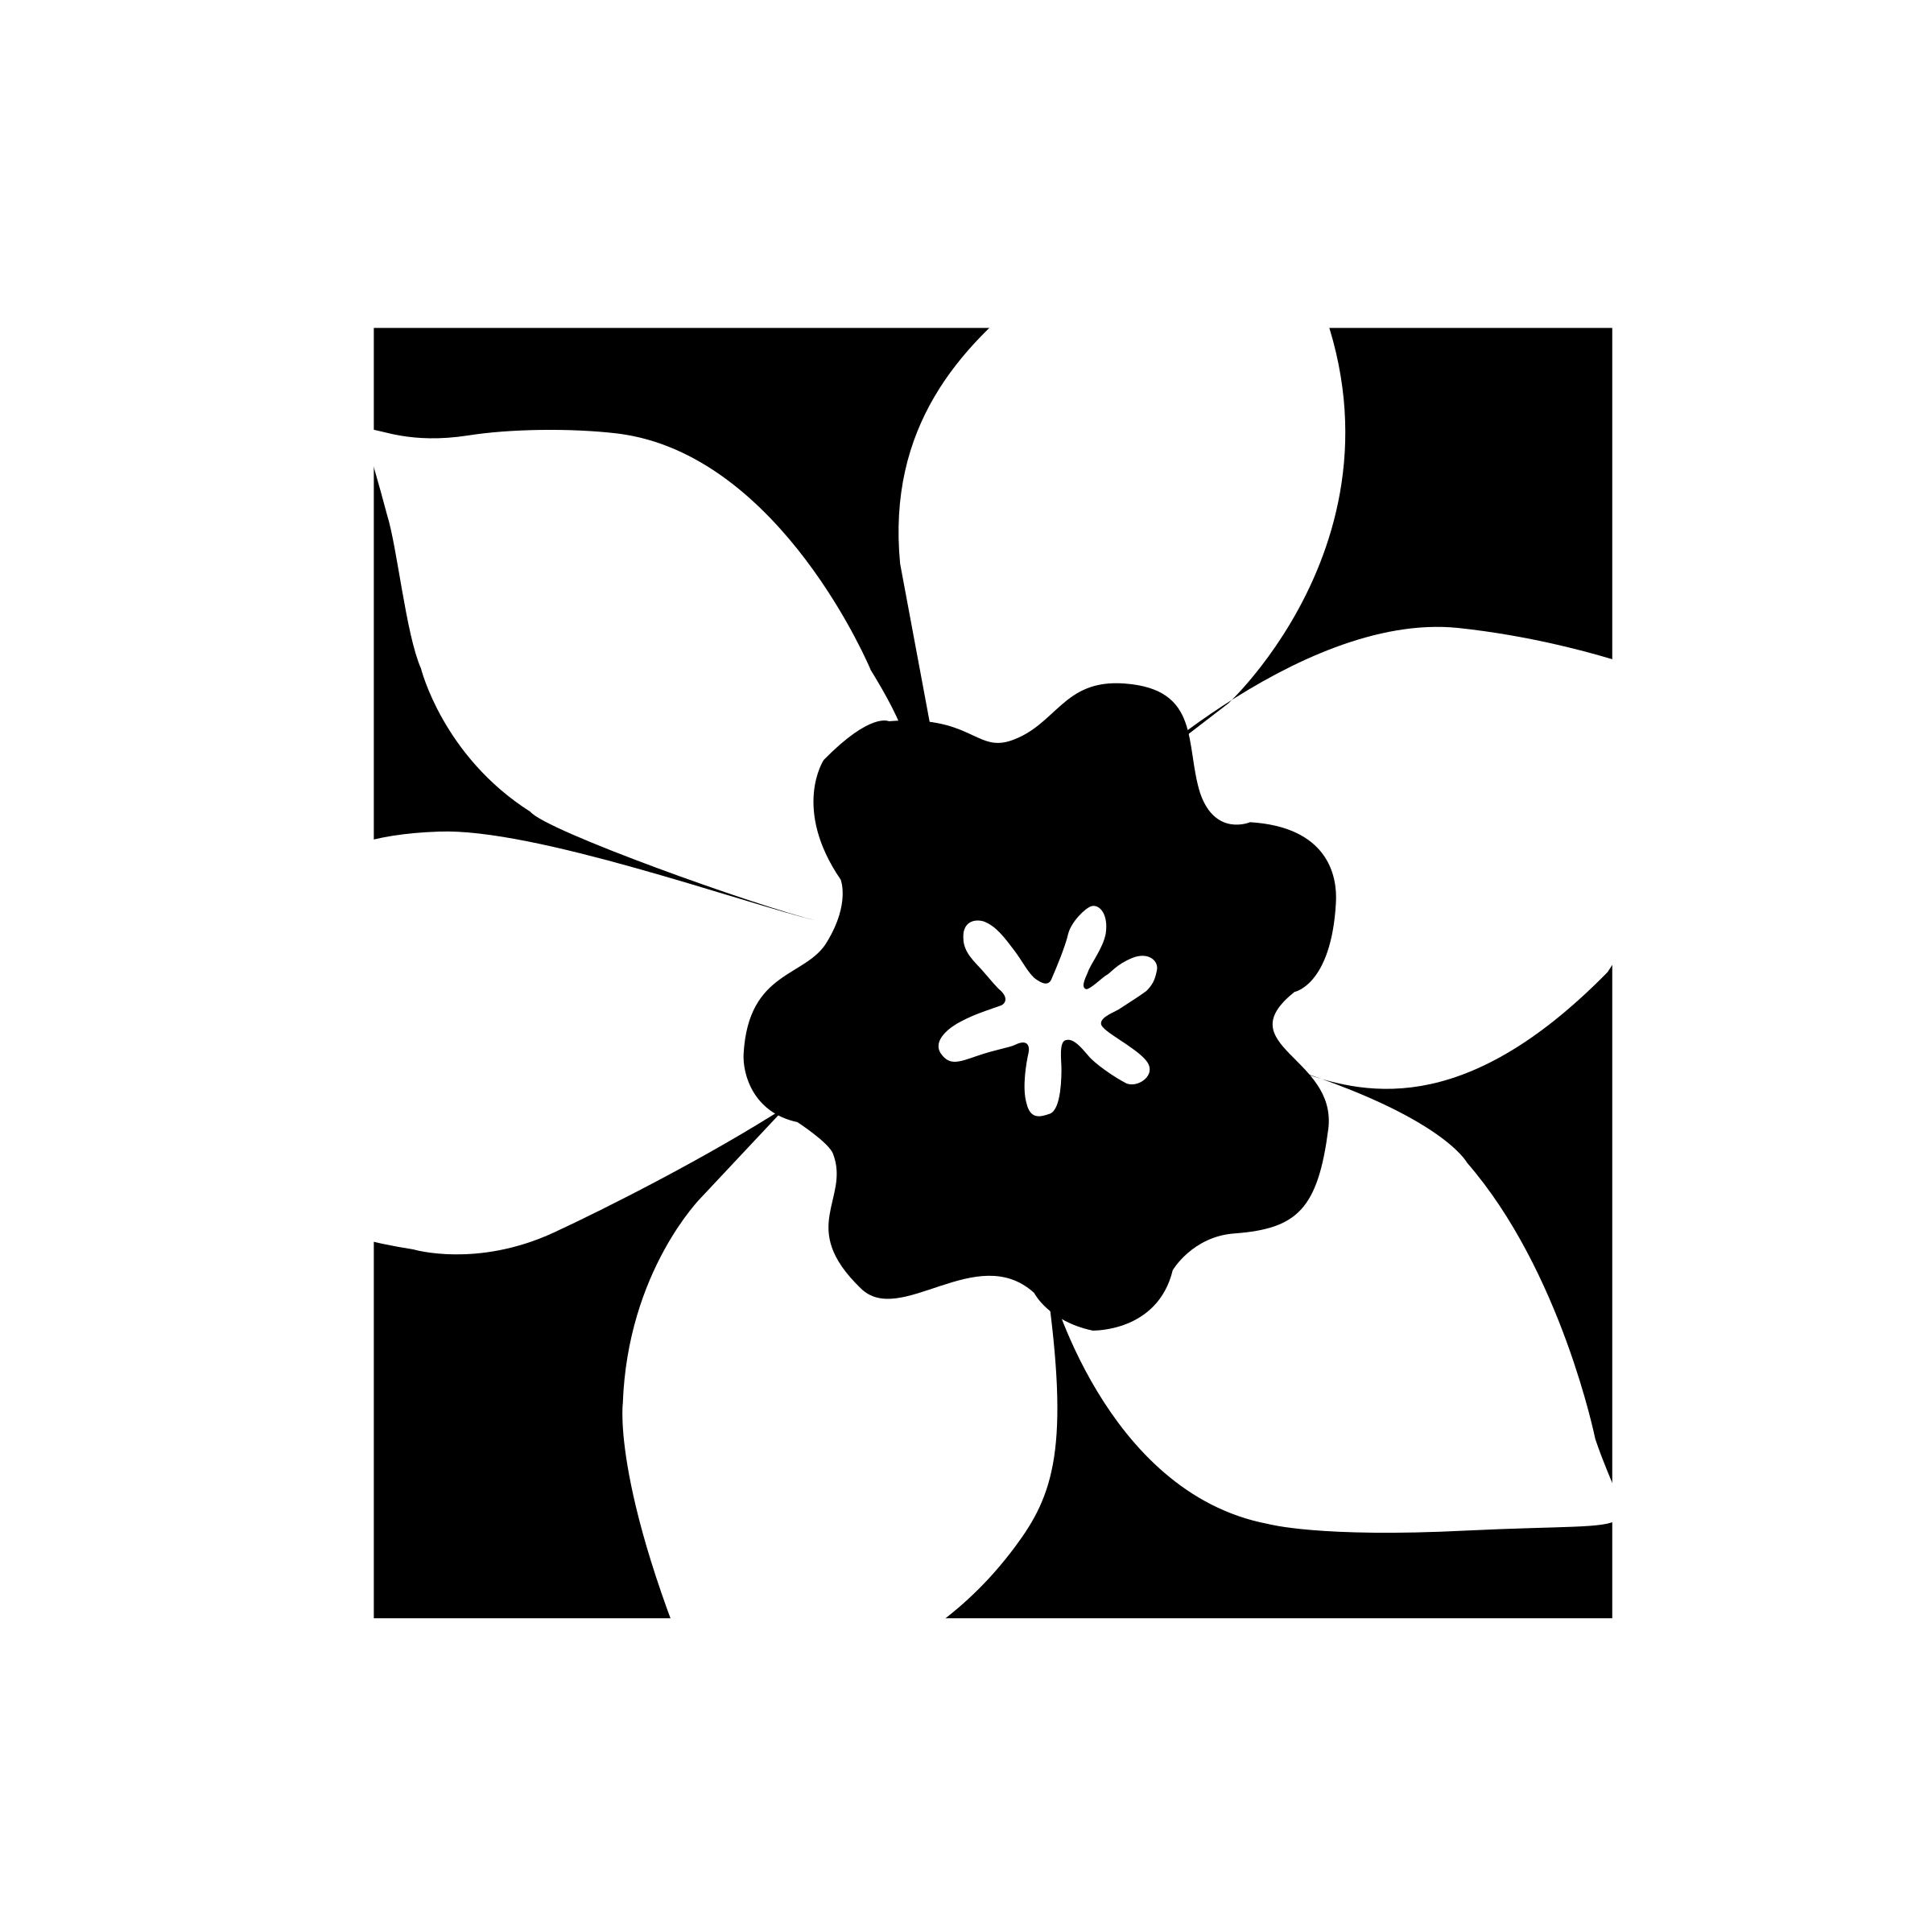 Cancer vector black and white. Canadian society logo png